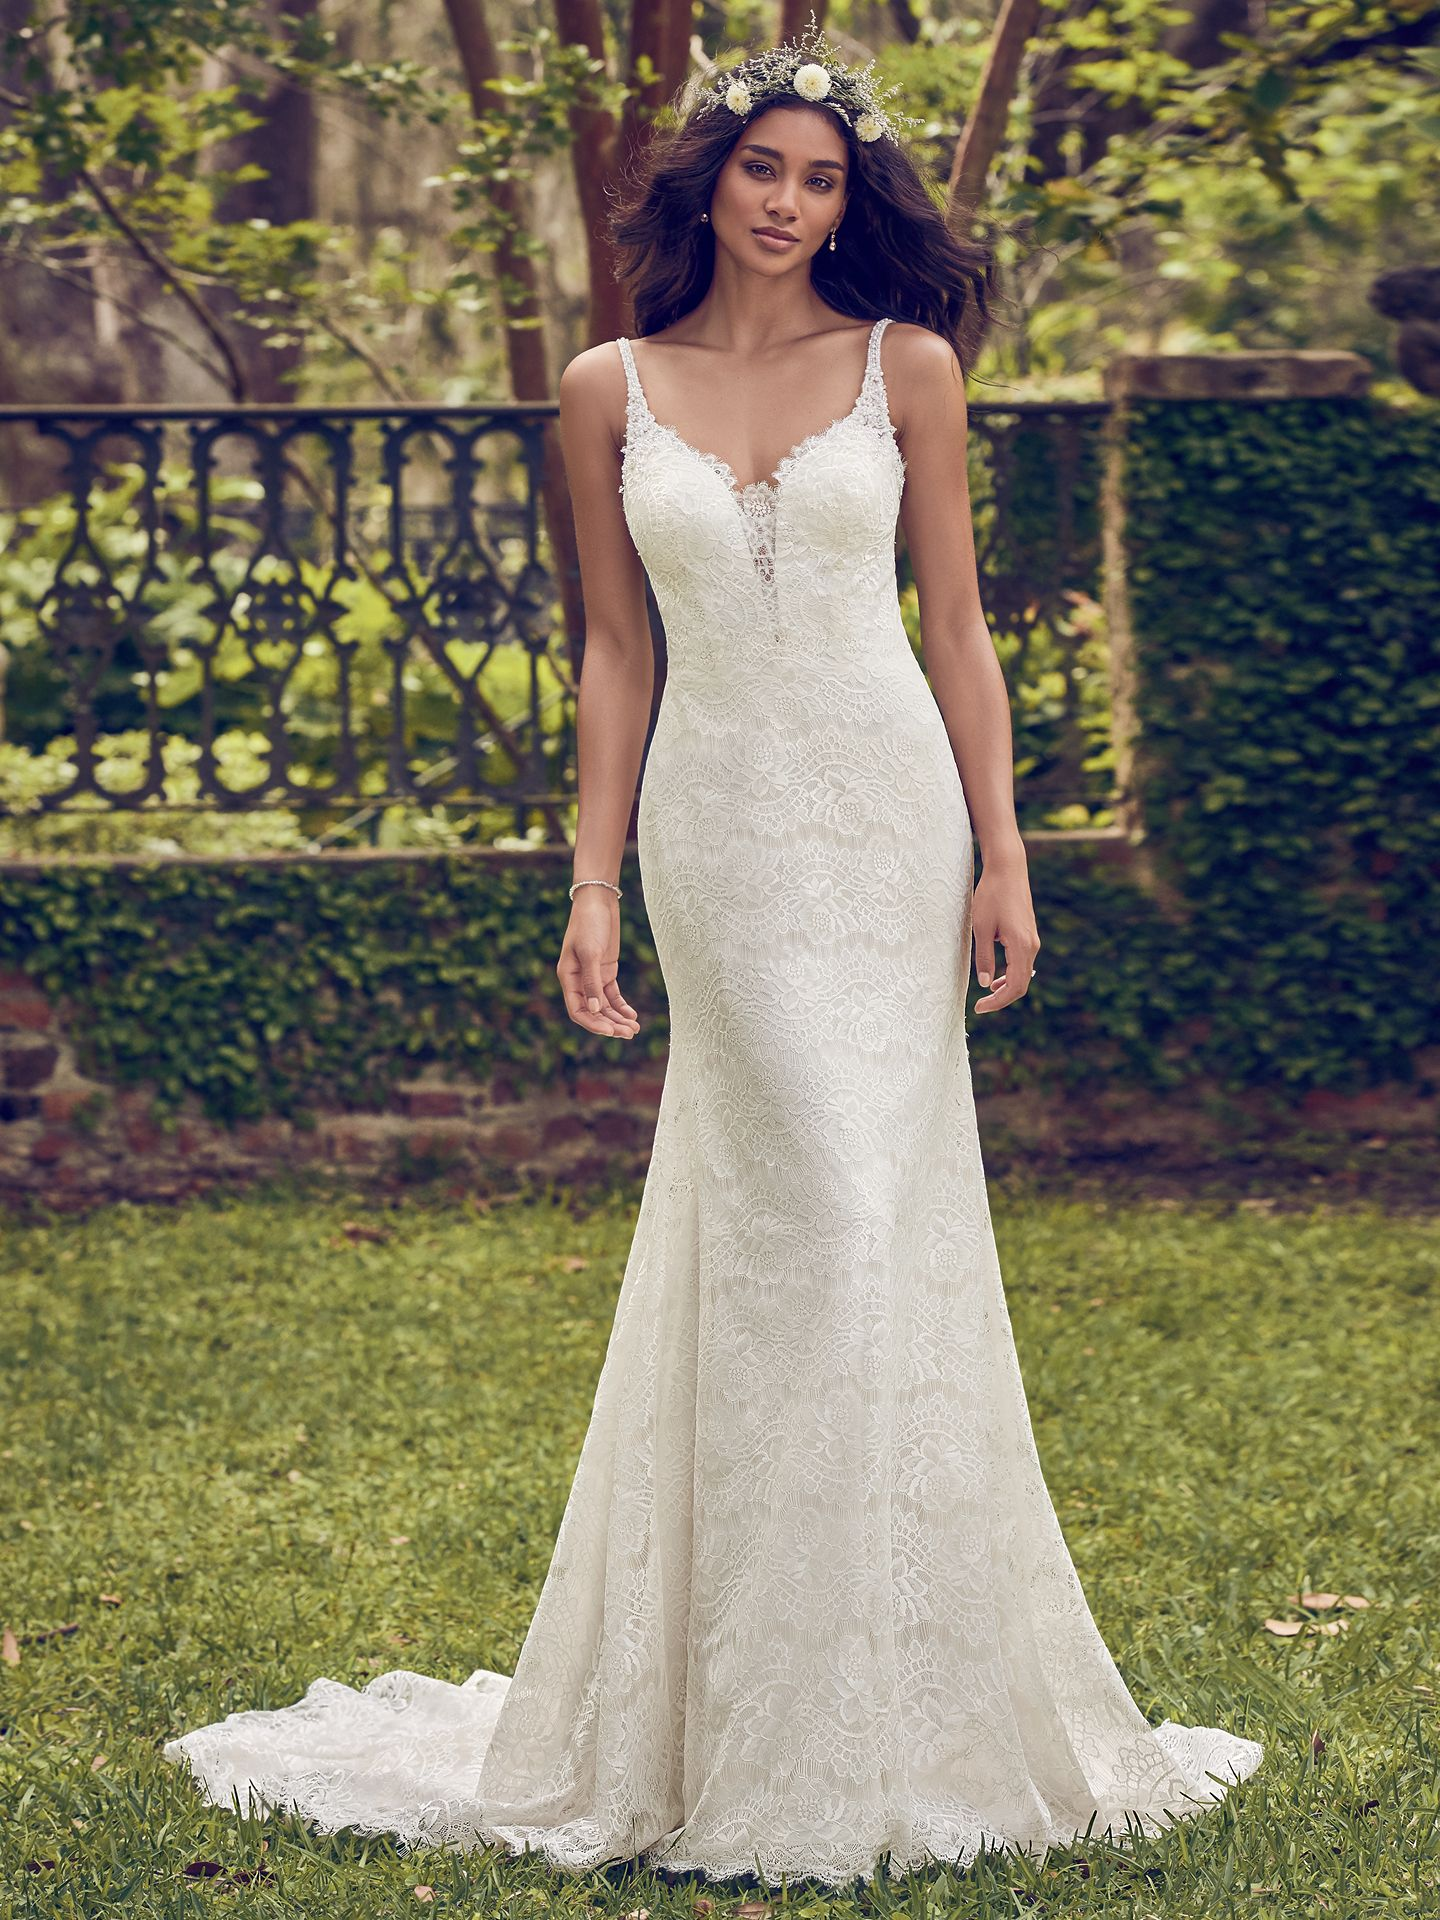 Dorian wedding dress features soft allover lace comprises this wedding dress, featuring illusion lace details along the plunging sweetheart neckline and scoop back. - The Latest Wedding Dress Trends for Engagement Season 2018